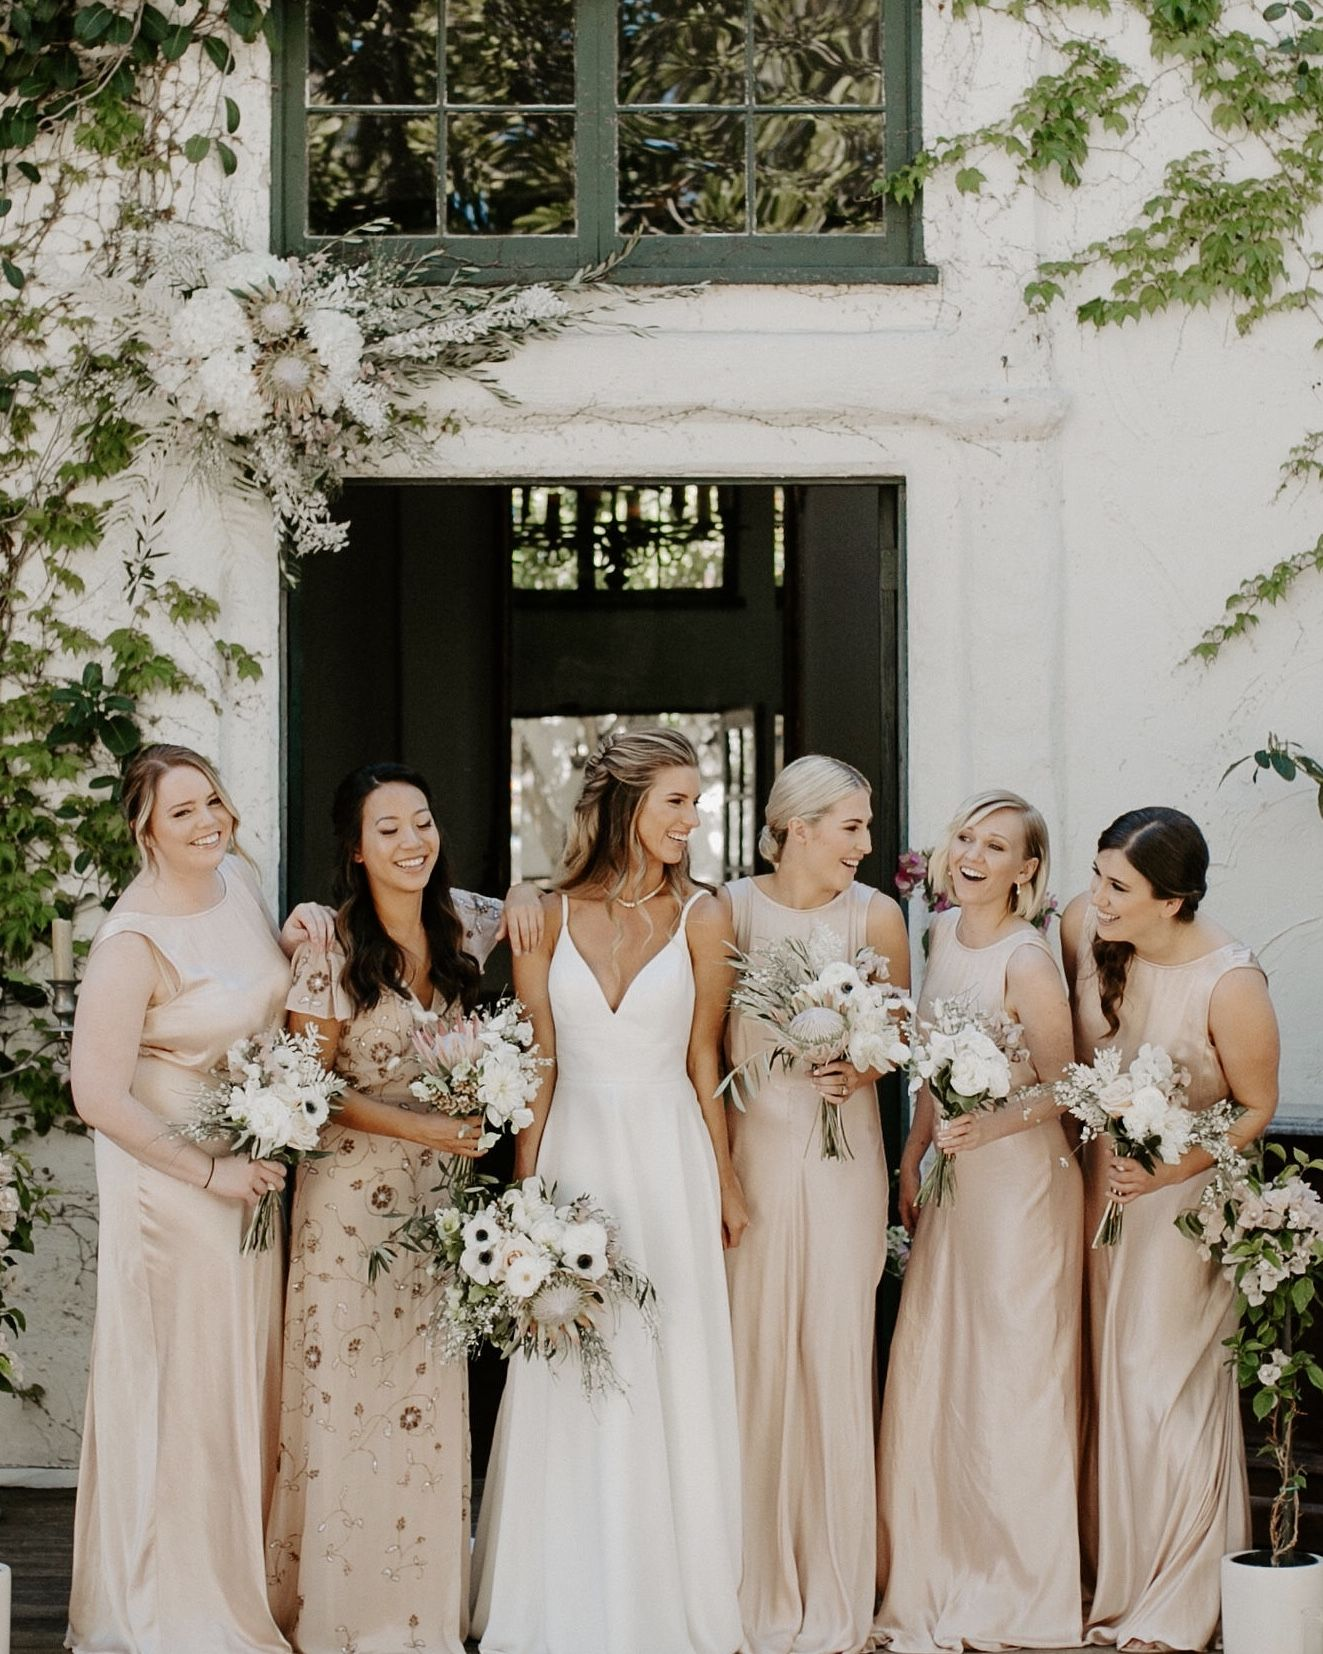 Blush Bridesmaid Dresses From Bhldn Beloved Gown Plymouth Dress Alexia Dr Peach Bridesmaid Dresses Champagne Bridesmaid Dresses Wedding Bridesmaid Dresses